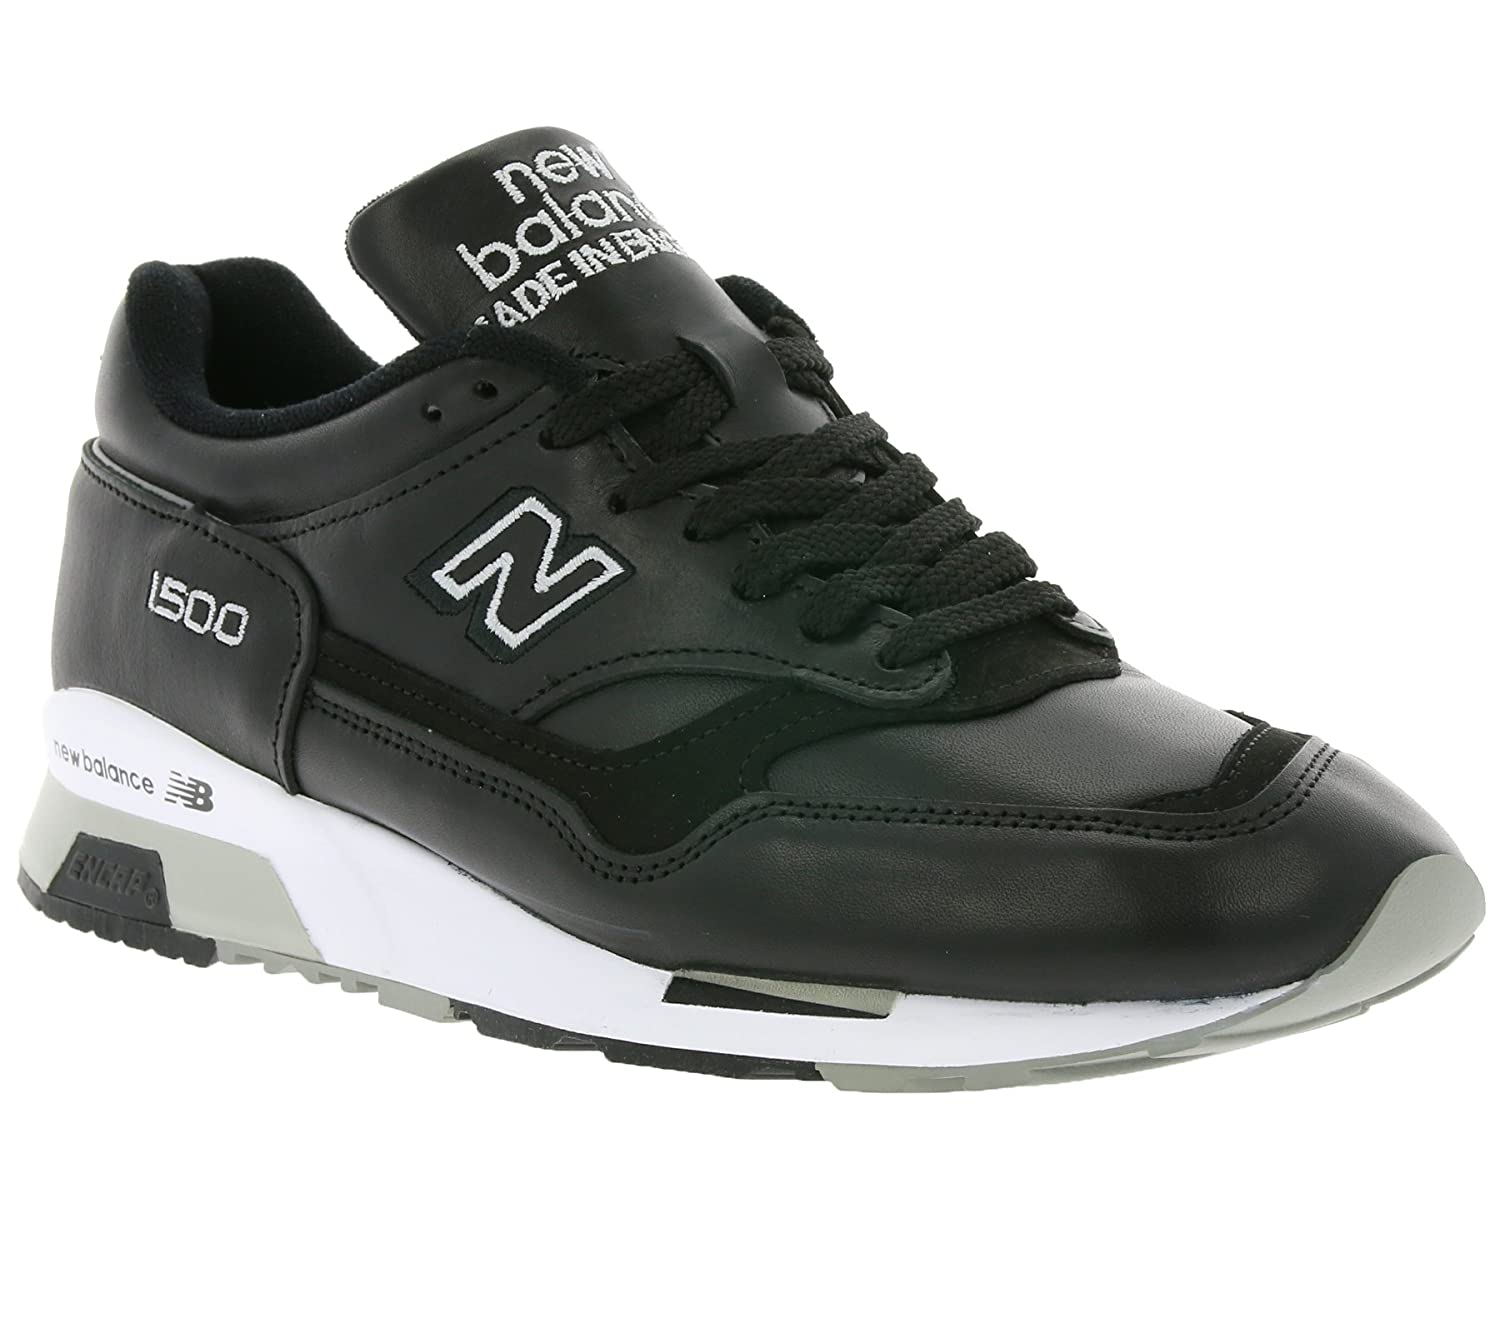 low priced 7a129 db558 New Balance 1500 Made in UK Men's Real Leather Sneaker Black ...